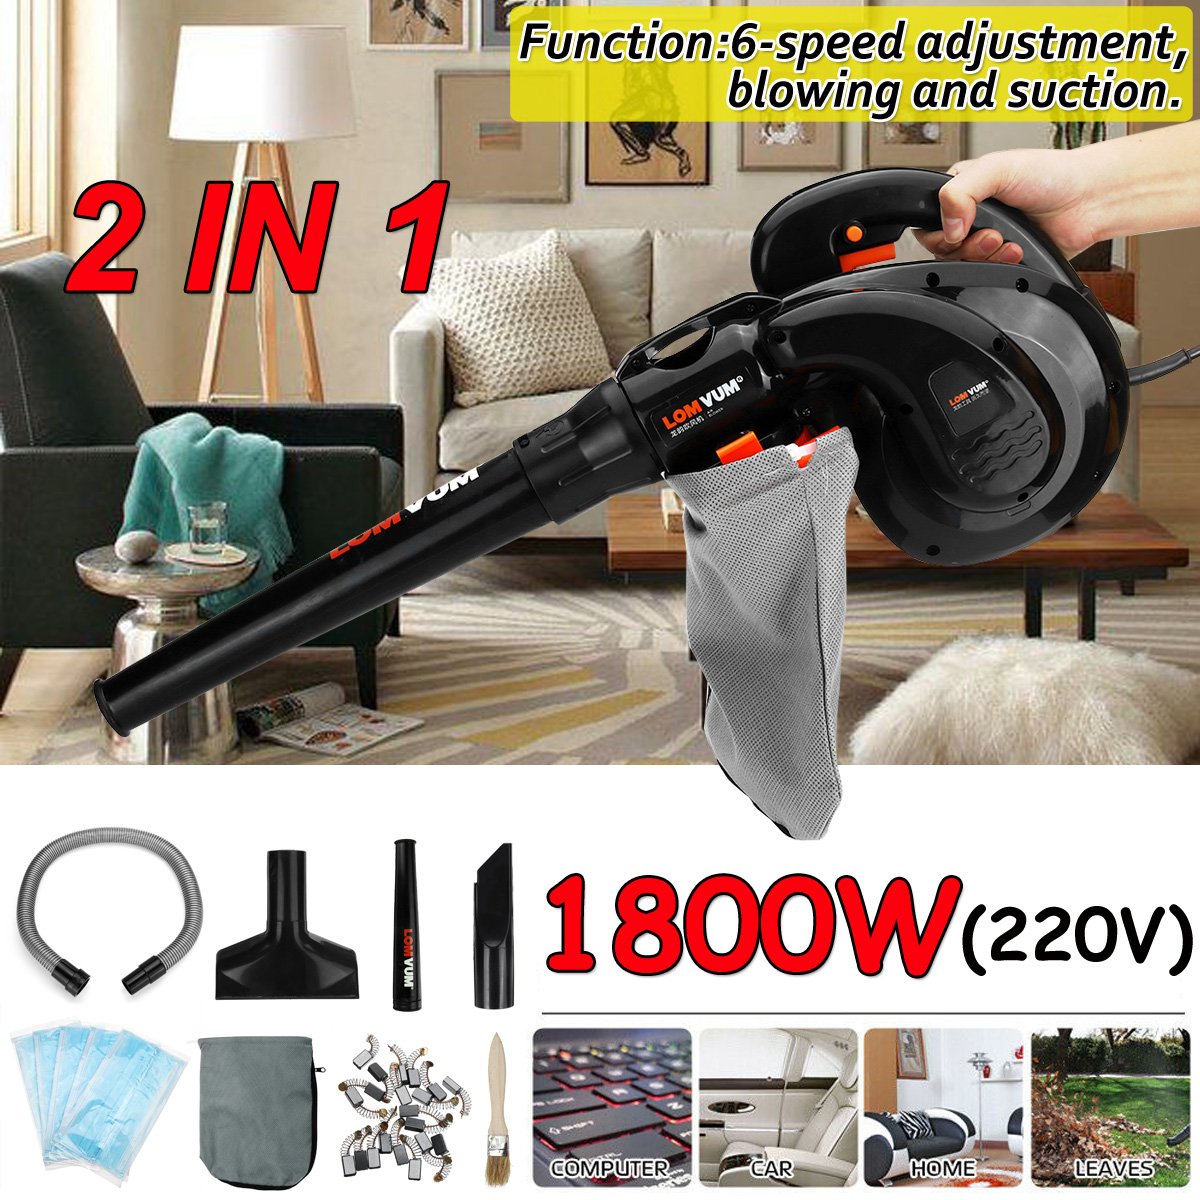 Air leaf Blower 220V 1800W Air Blower Computer Cleaner Blower Cordless Sweeper & Vacuum Cleaner Dust Collector Dual Use|Blowers| |  - title=